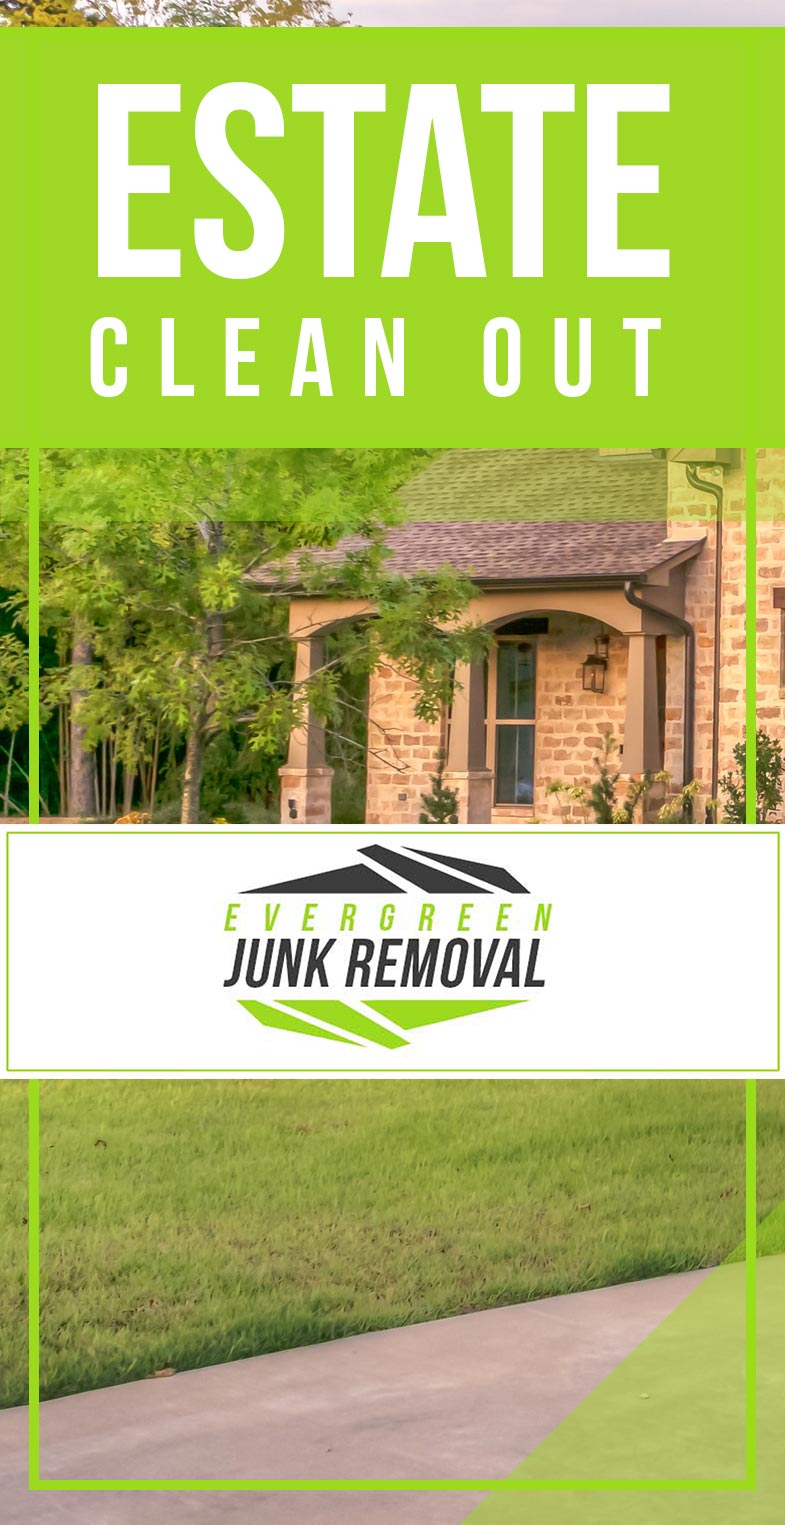 Santee Property Clean Out